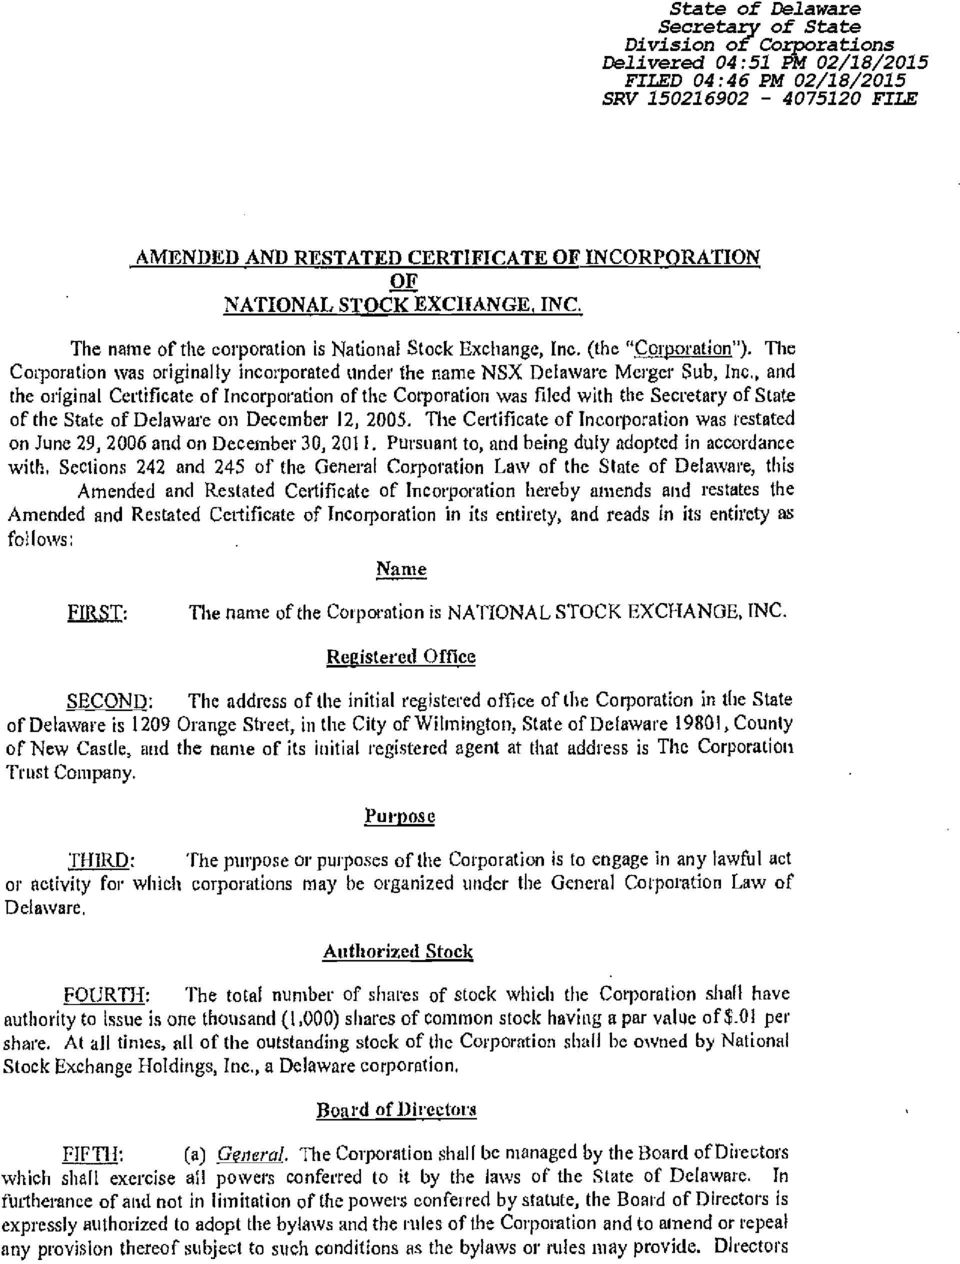 , and the original Certificate of Incorporation of the Corporation was filed with the Secretary of State of thc State of Delaware on December 12, 2005.